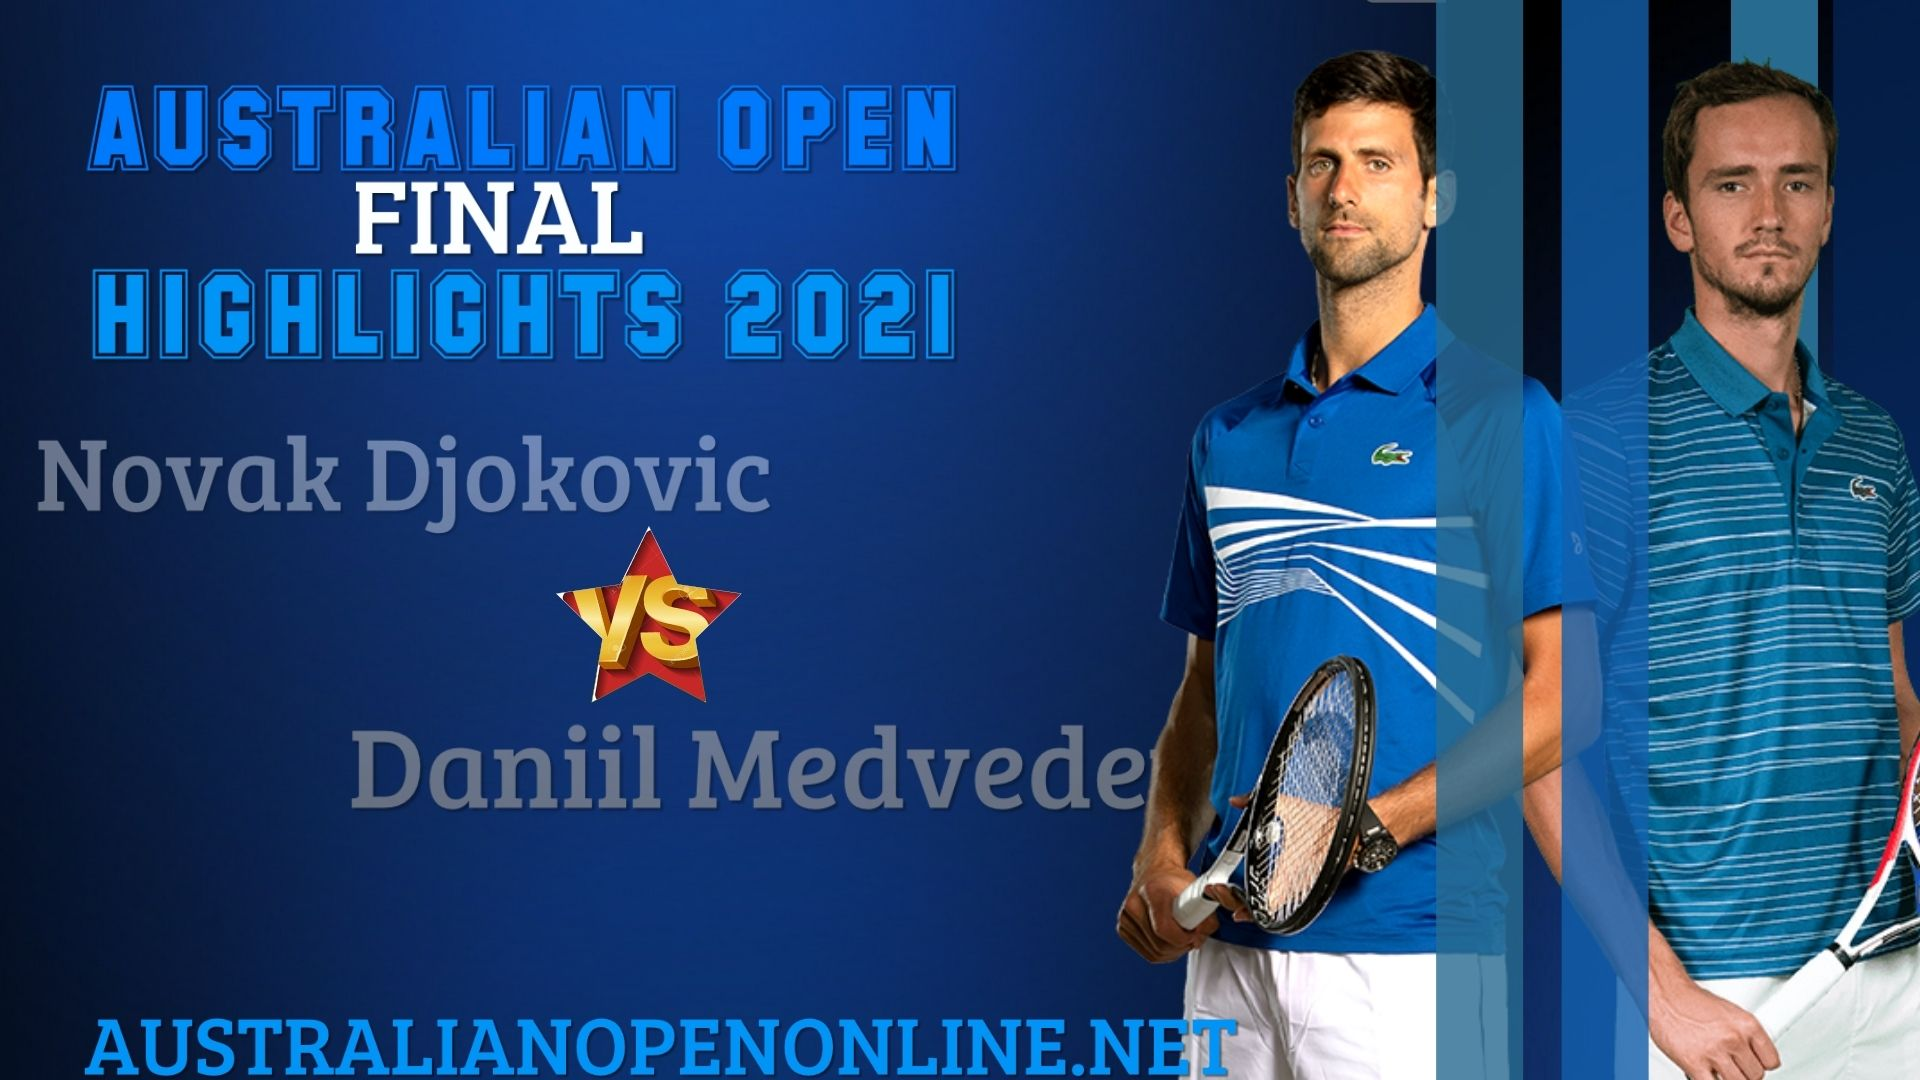 Medvedev Vs Djokovic Final Highlights 2021